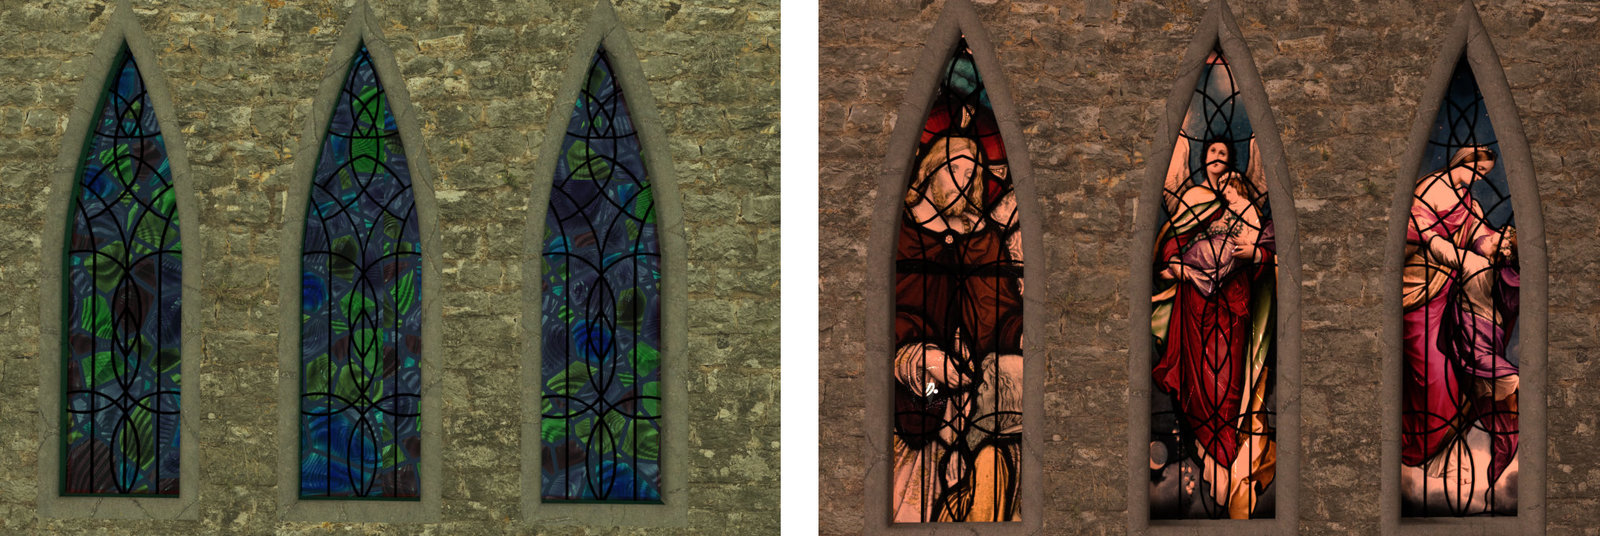 Satined Glass Changes.jpg